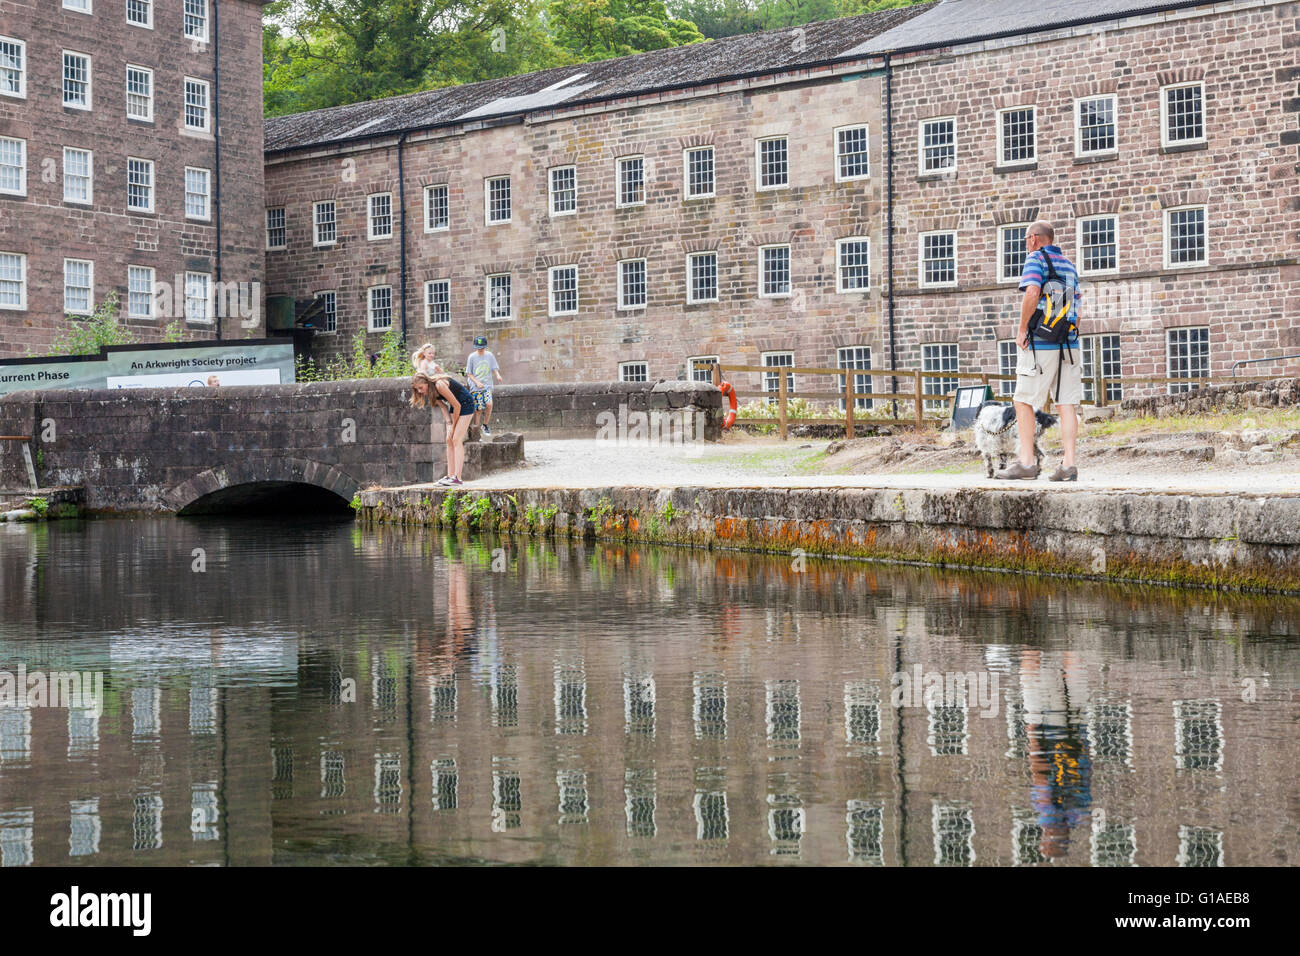 People visiting Cromford Mill, part of the Derwent Valley Mills World Heritage Site, Derbyshire, England, UK - Stock Image